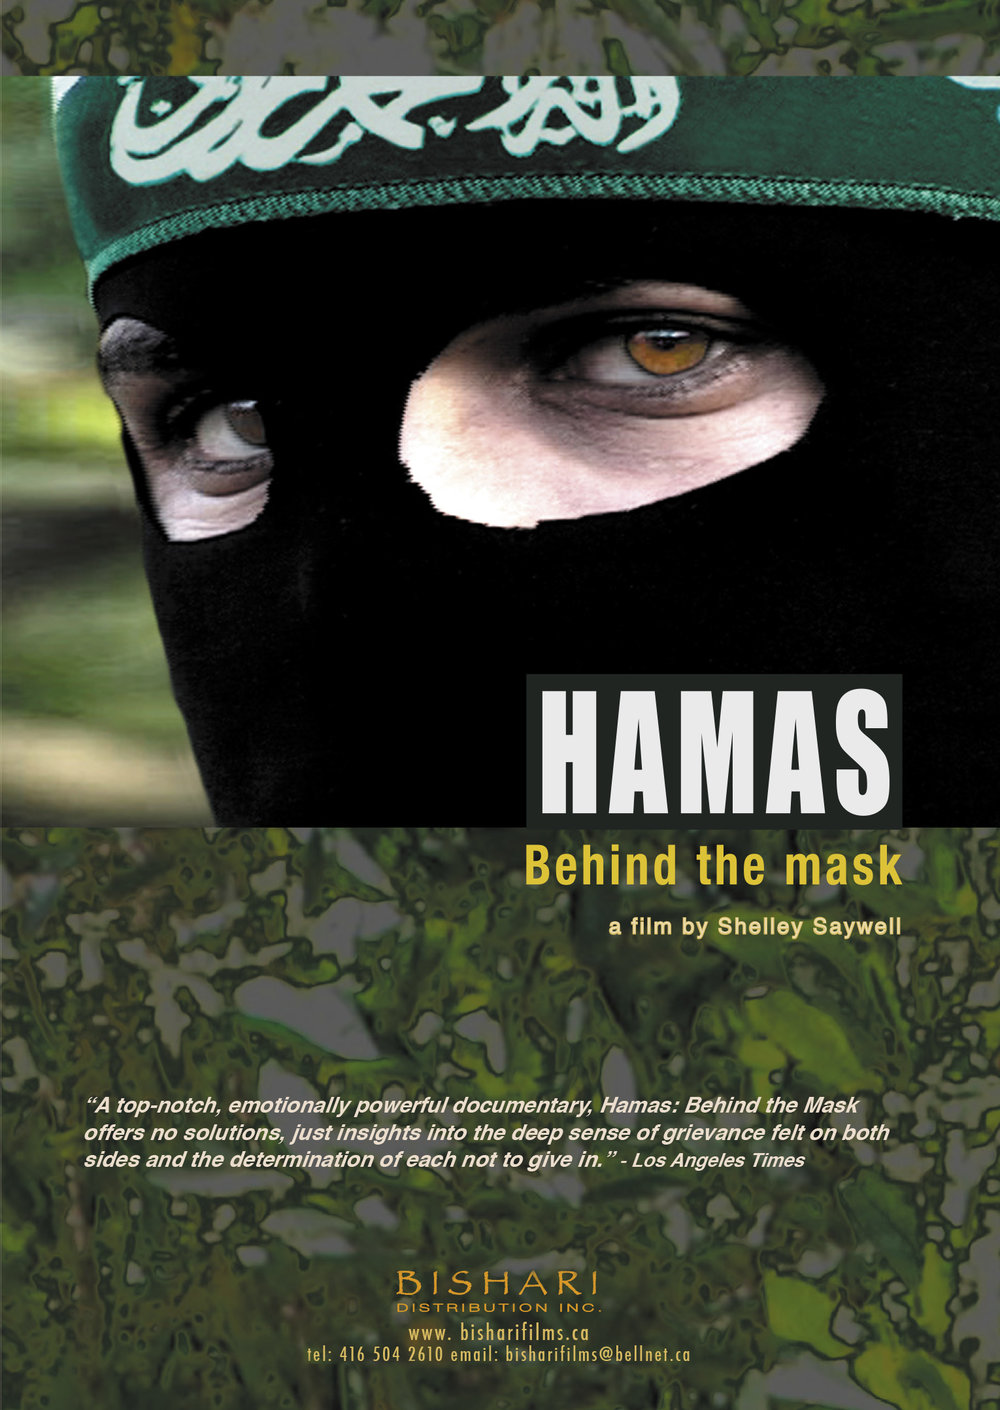 HAMAS BEHIND THE MASK